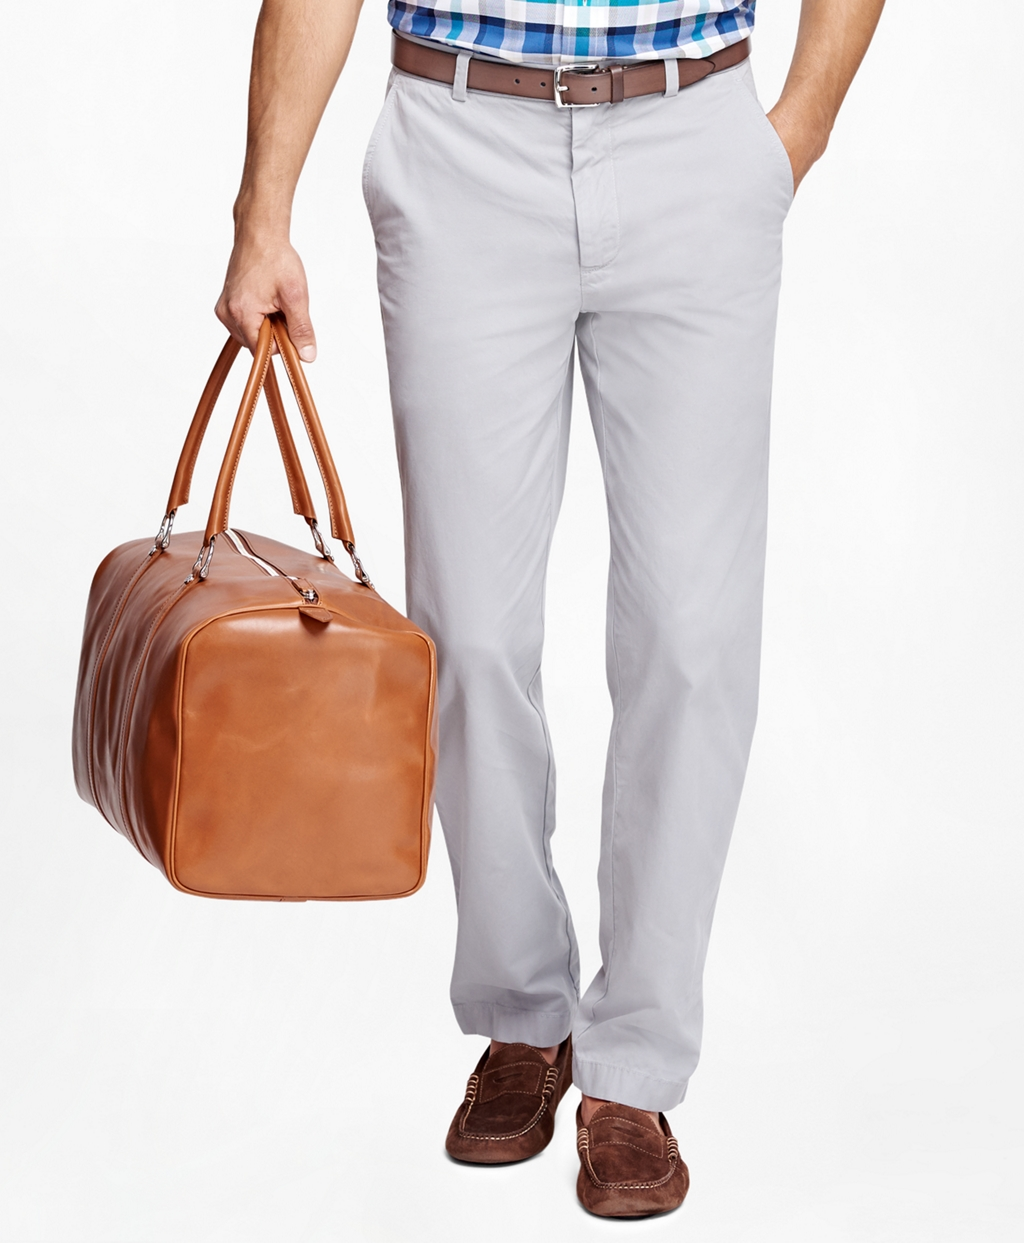 Brooks Brothers Clark Fit Garment-Dyed Chinos,$98.50